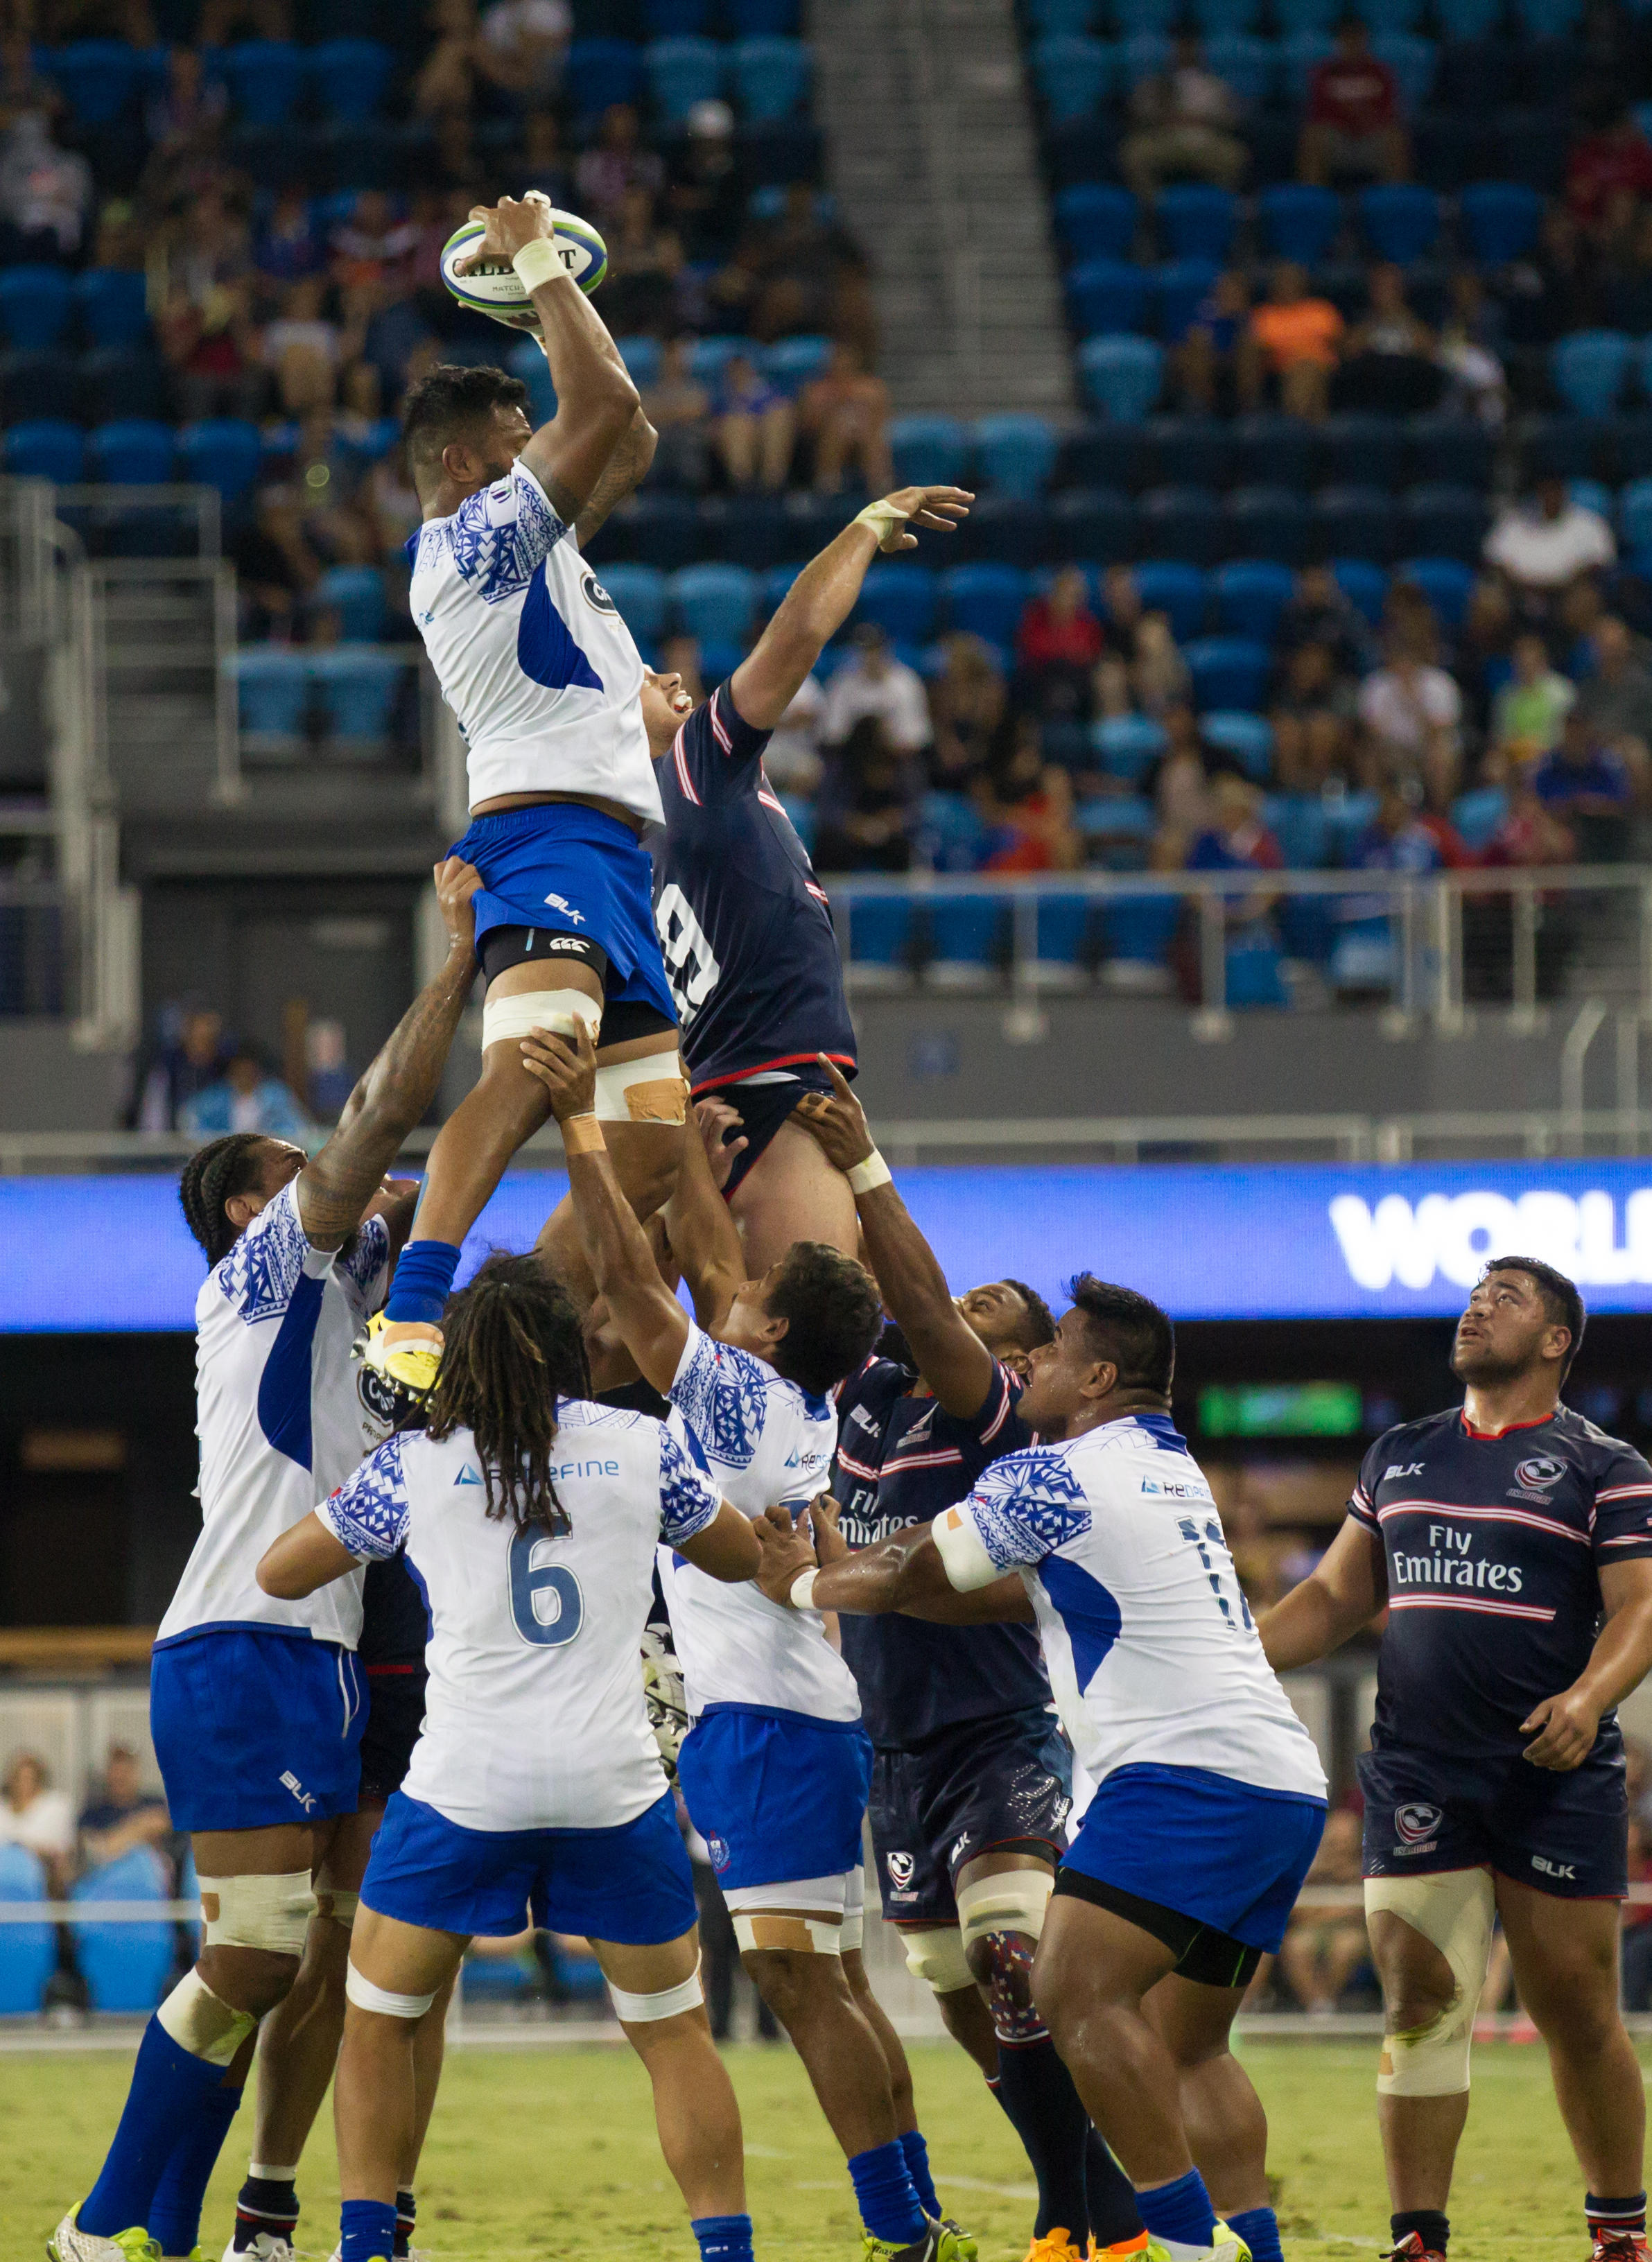 Rugby World Cup Opponent Preview: One Last Job for Samoa's Old Guard